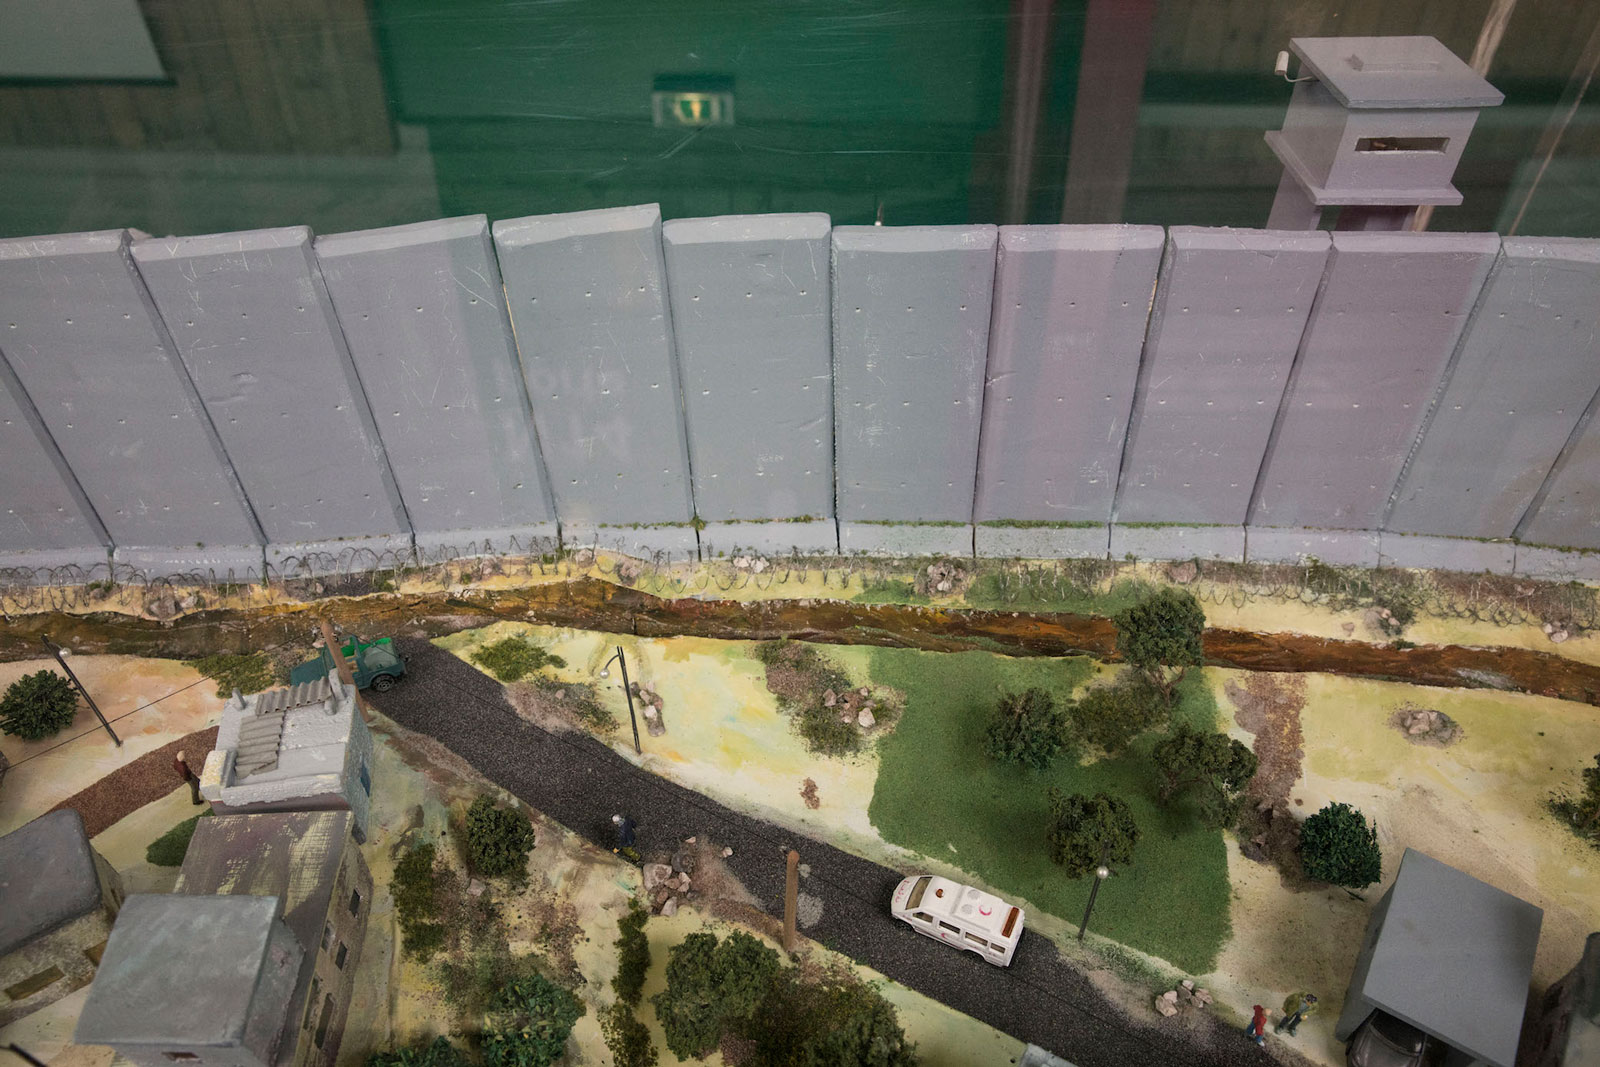 A model of the separation wall in Palestine, Le Bourget, France, May 14, 2016